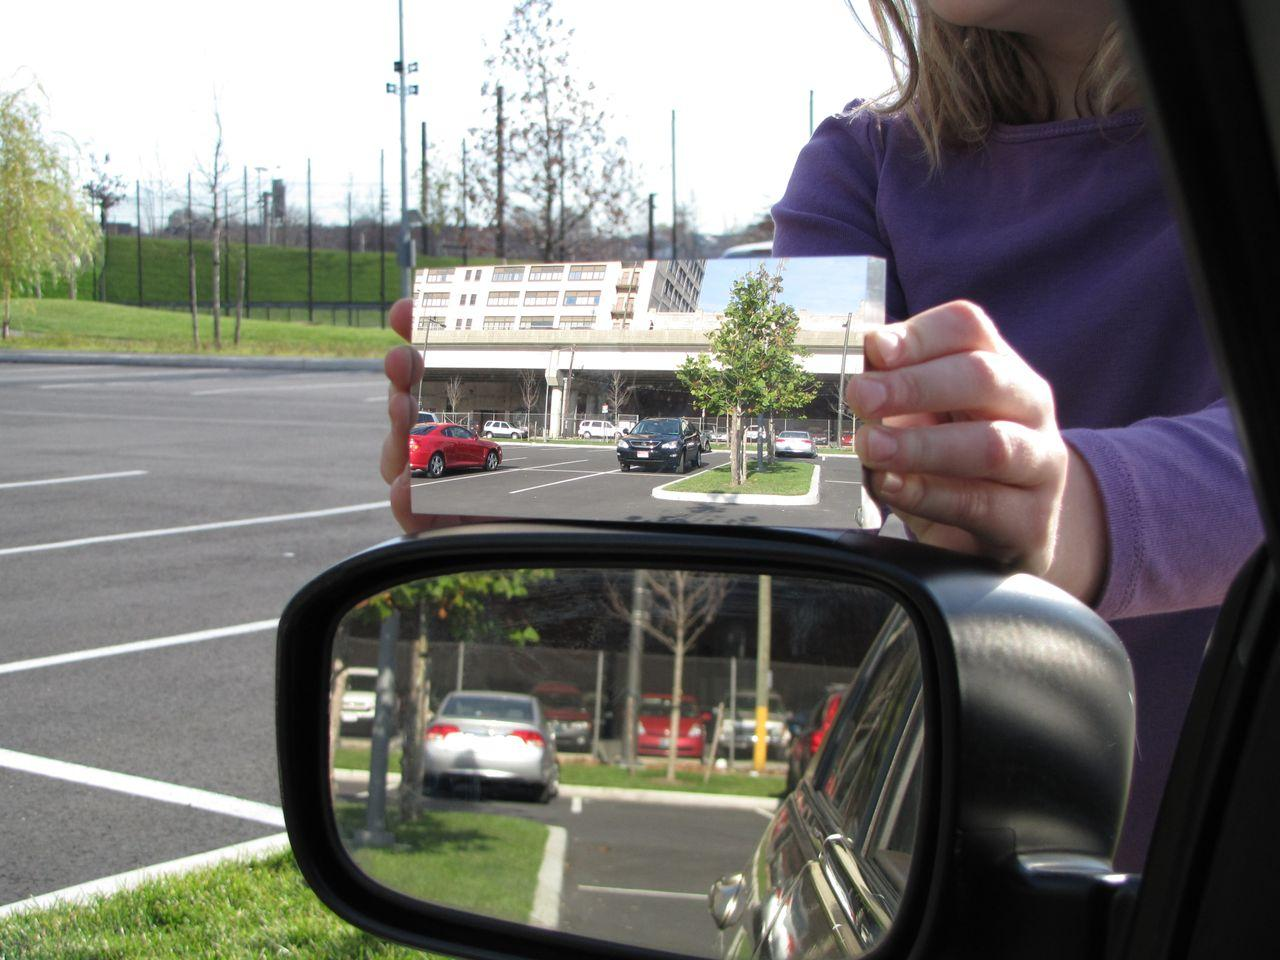 Dr. Hicks' mirror (top) as compared to a regular flat driver's side mirror